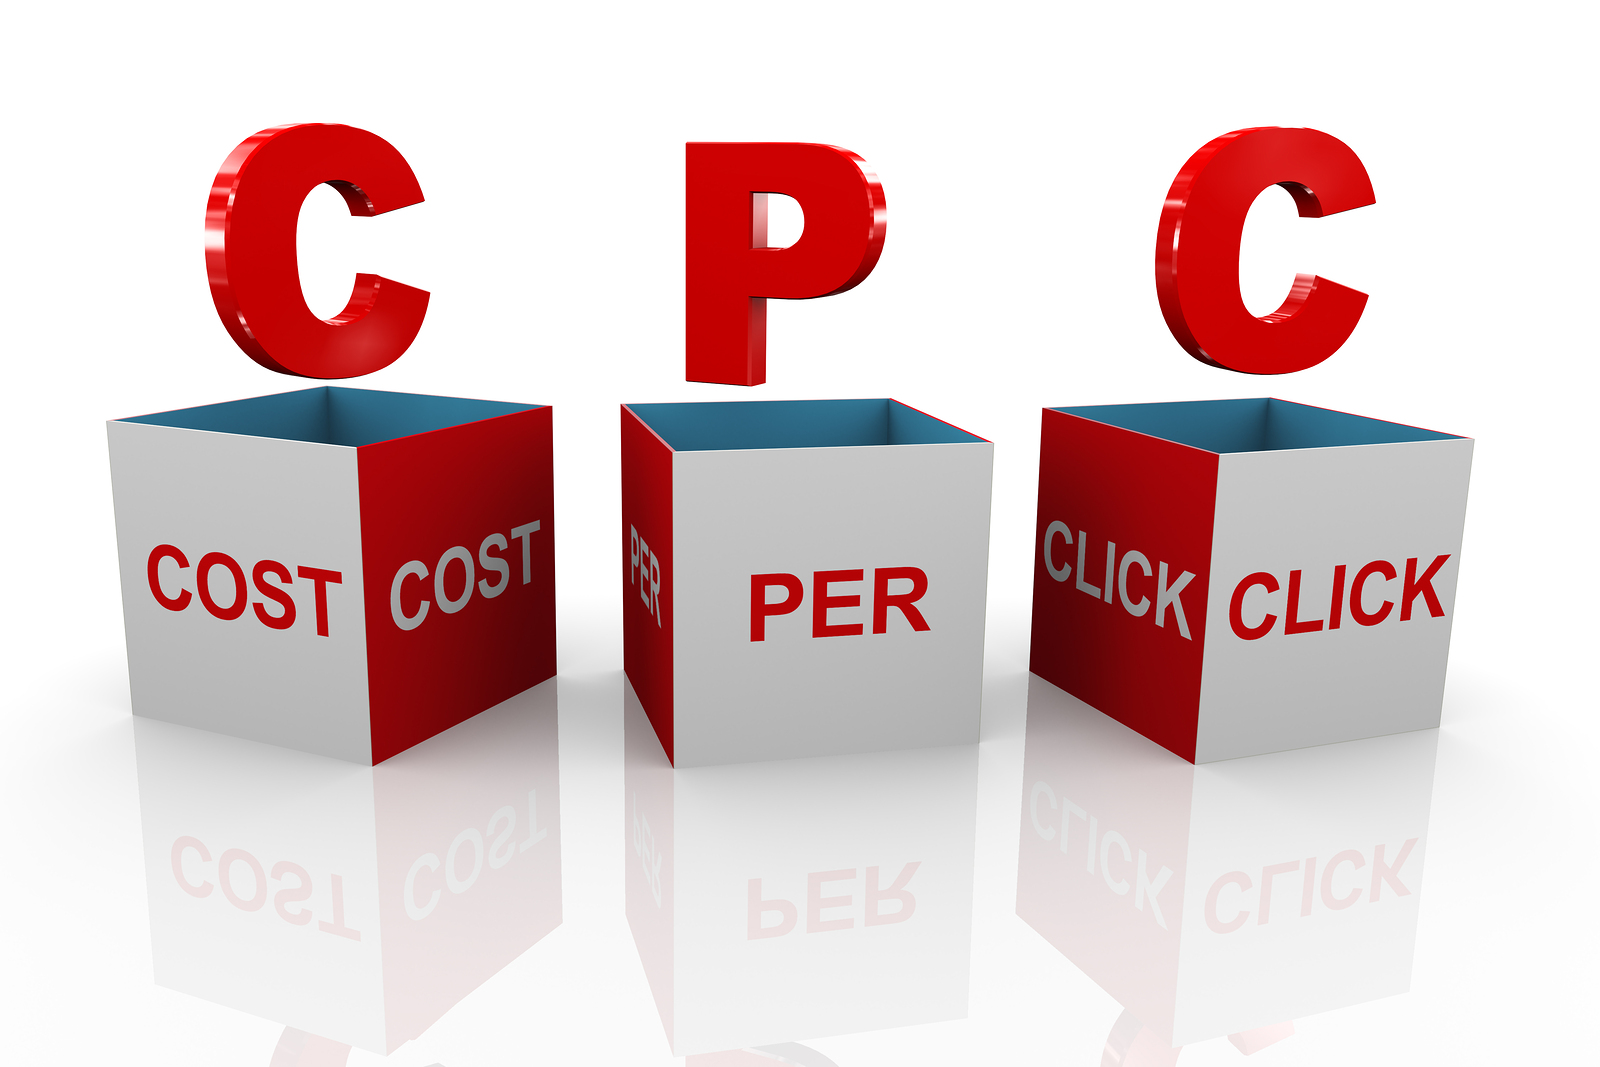 High CPC vs Low CPC in PPC